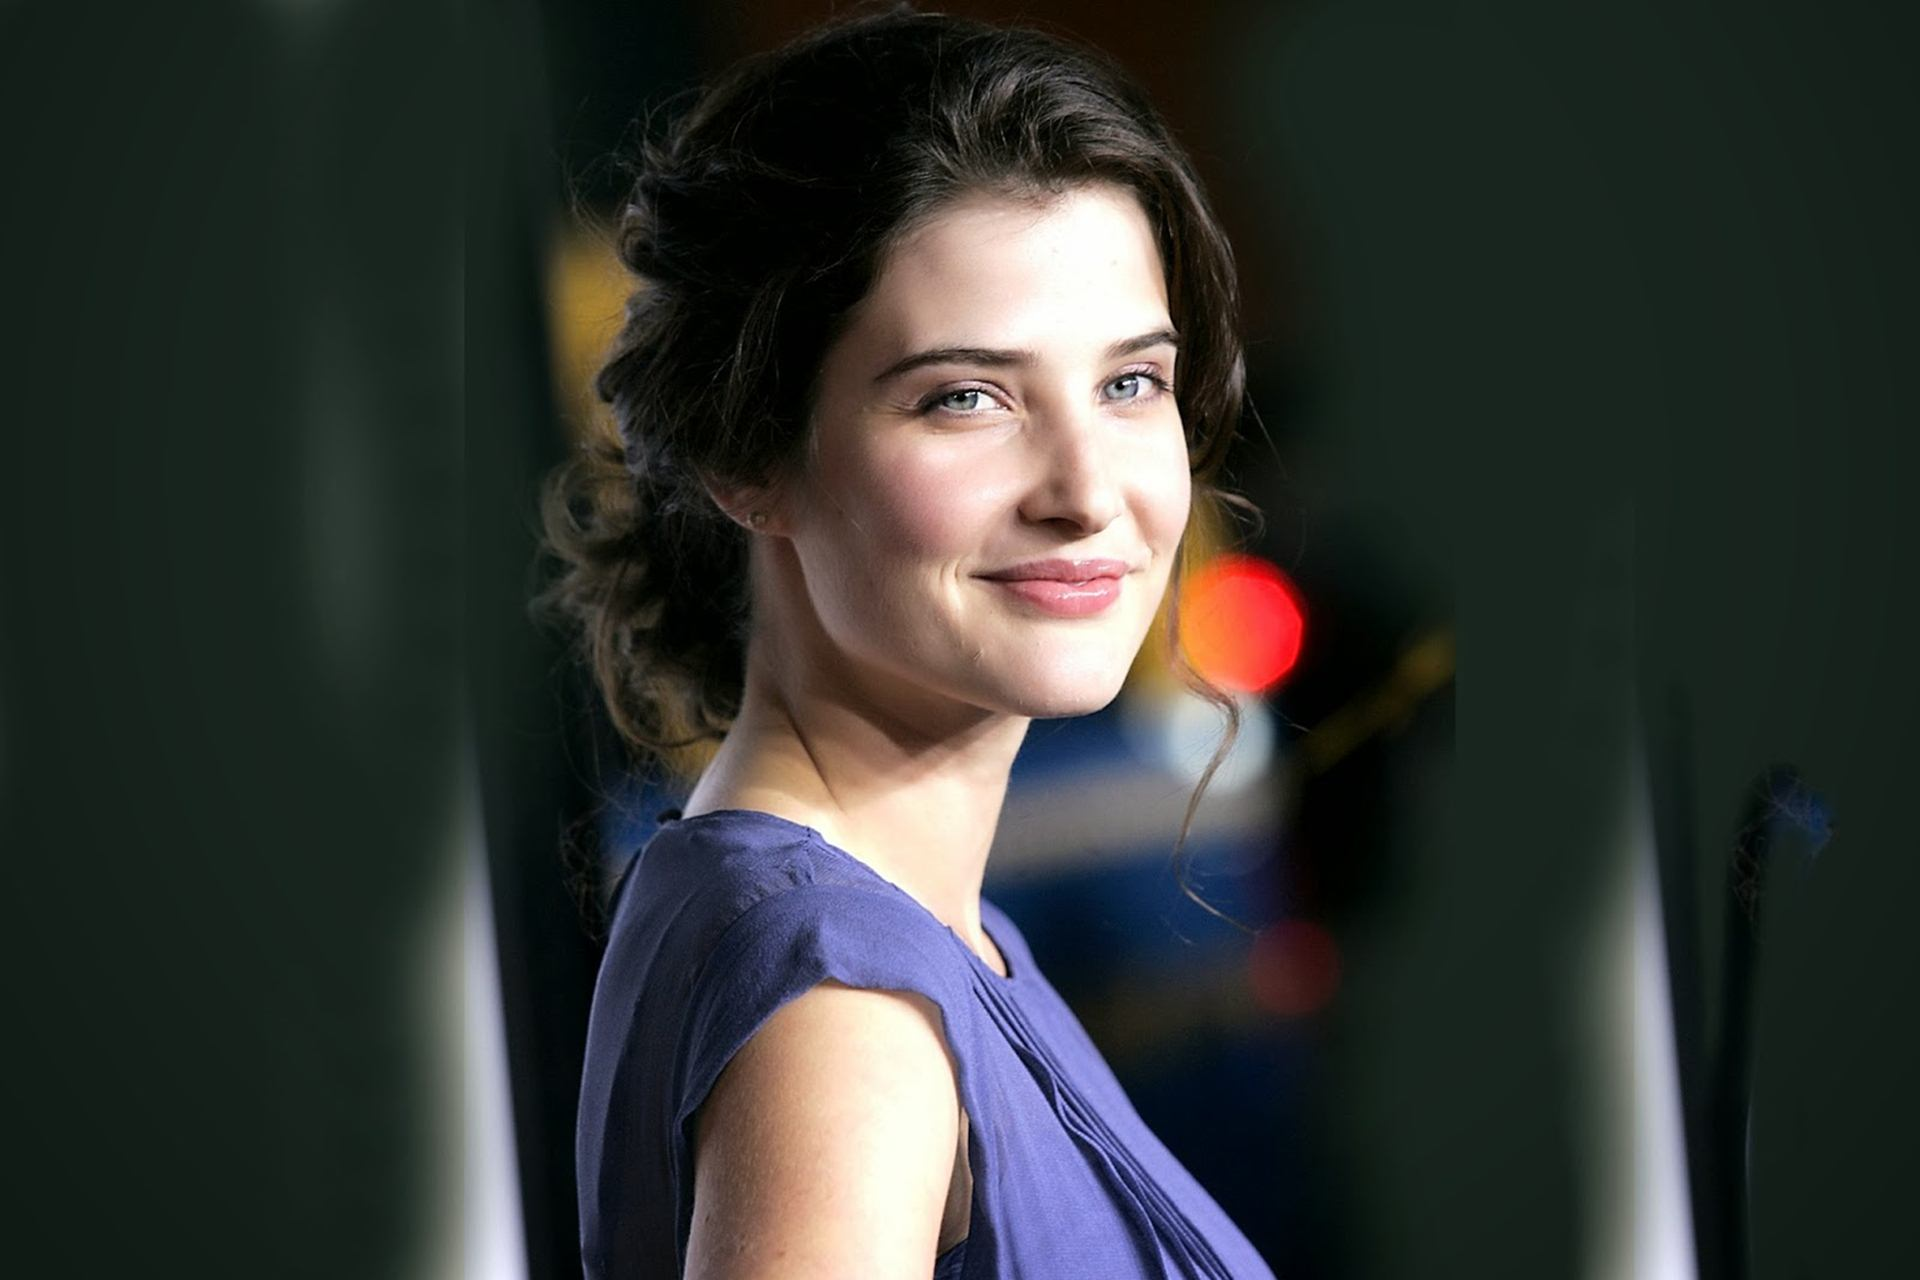 cobie smulders wallpapers high quality download free